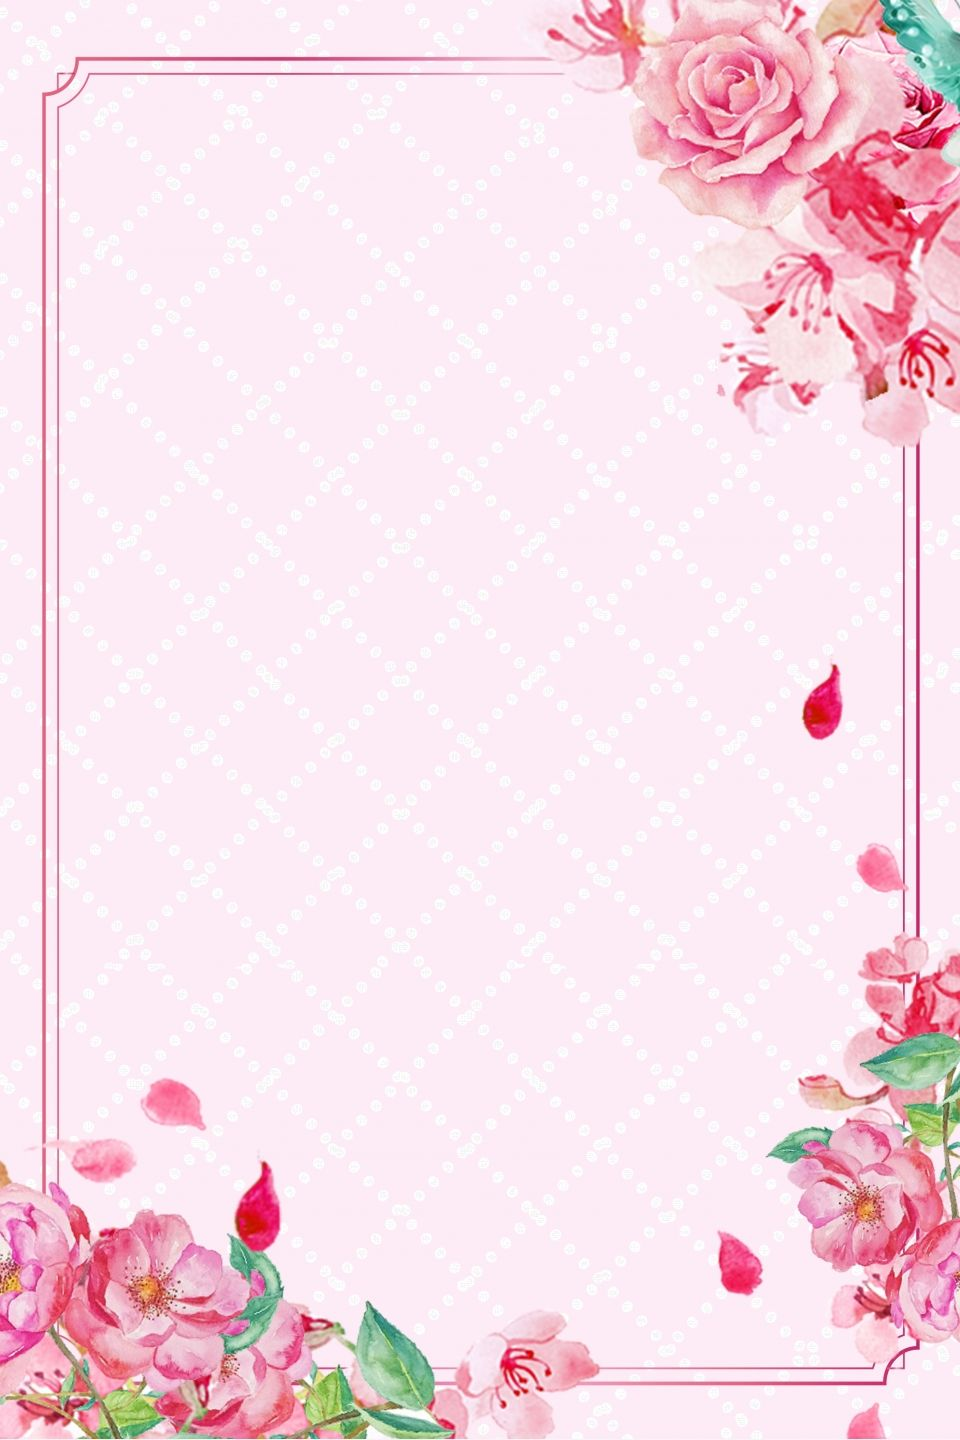 Small Fresh Background Hand Painted Floral Wedding Mat Card Floral Cards Design Flower Background Wallpaper Pink Background Images Flower wallpaper pink background